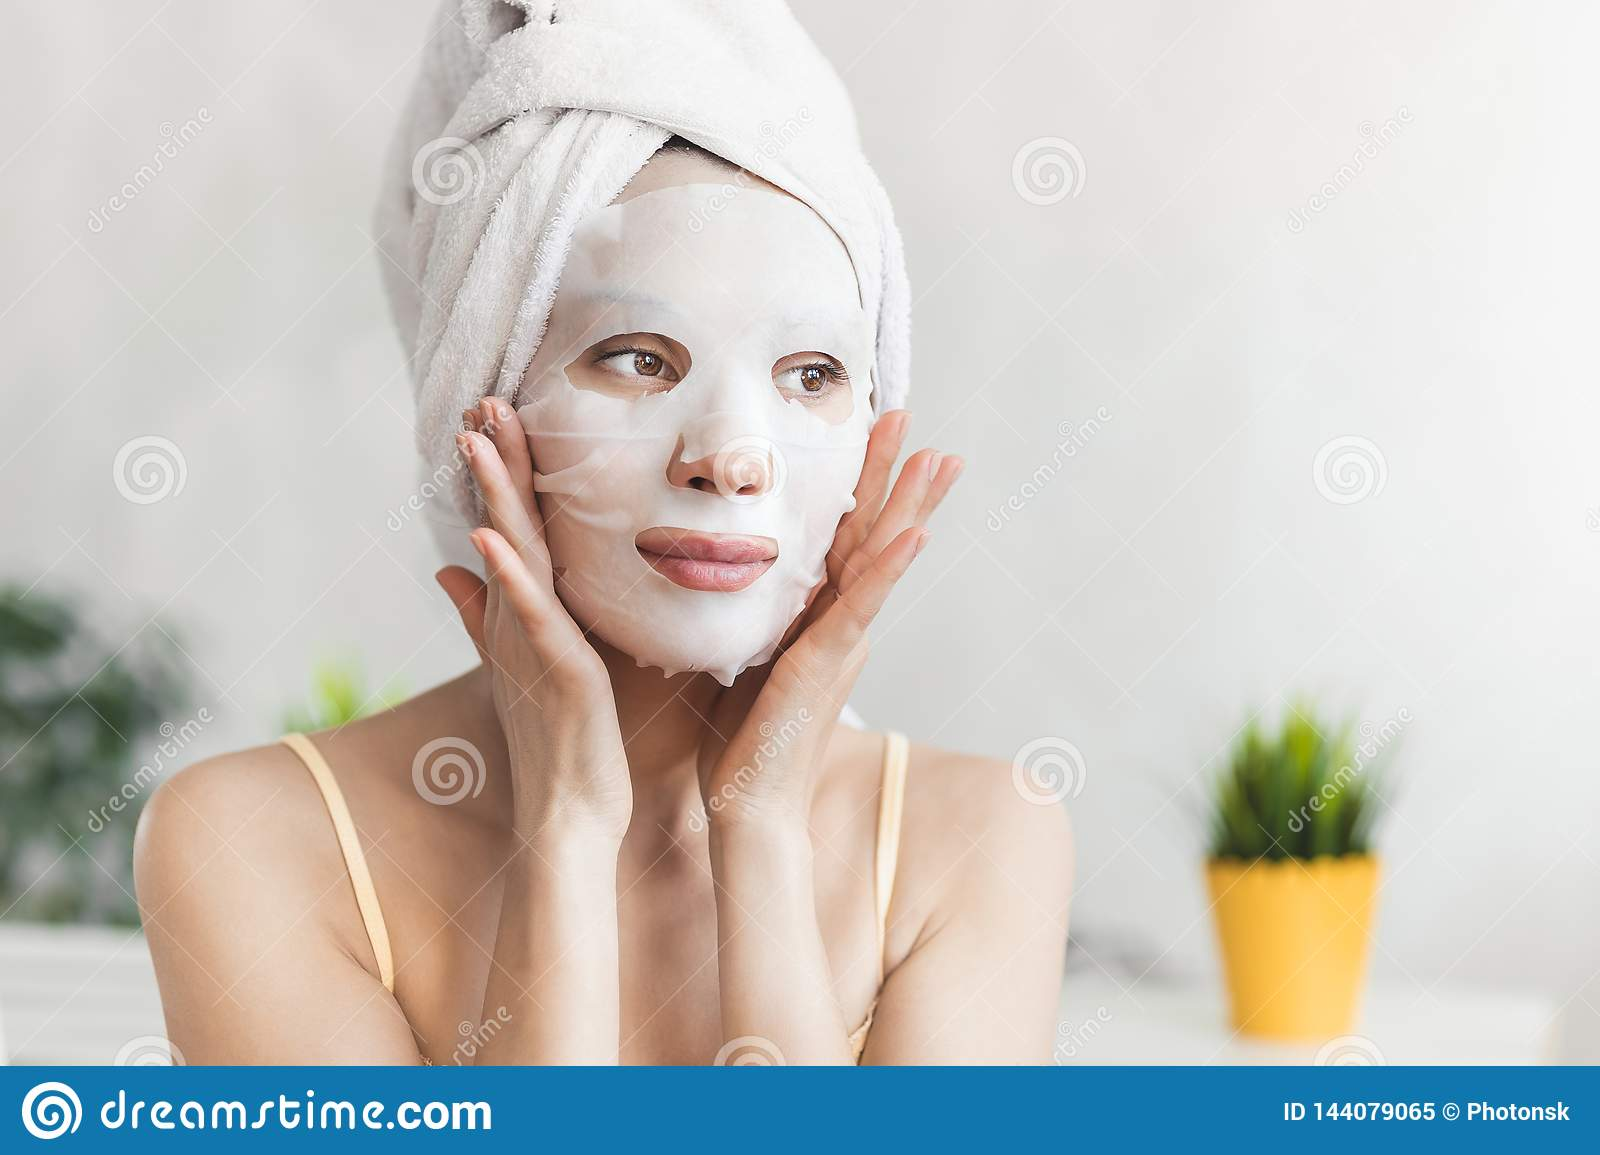 Face Skin care. Attractive Young Woman Wrapped in Bath Towel, with white moisturizing face mask . Skin care concept